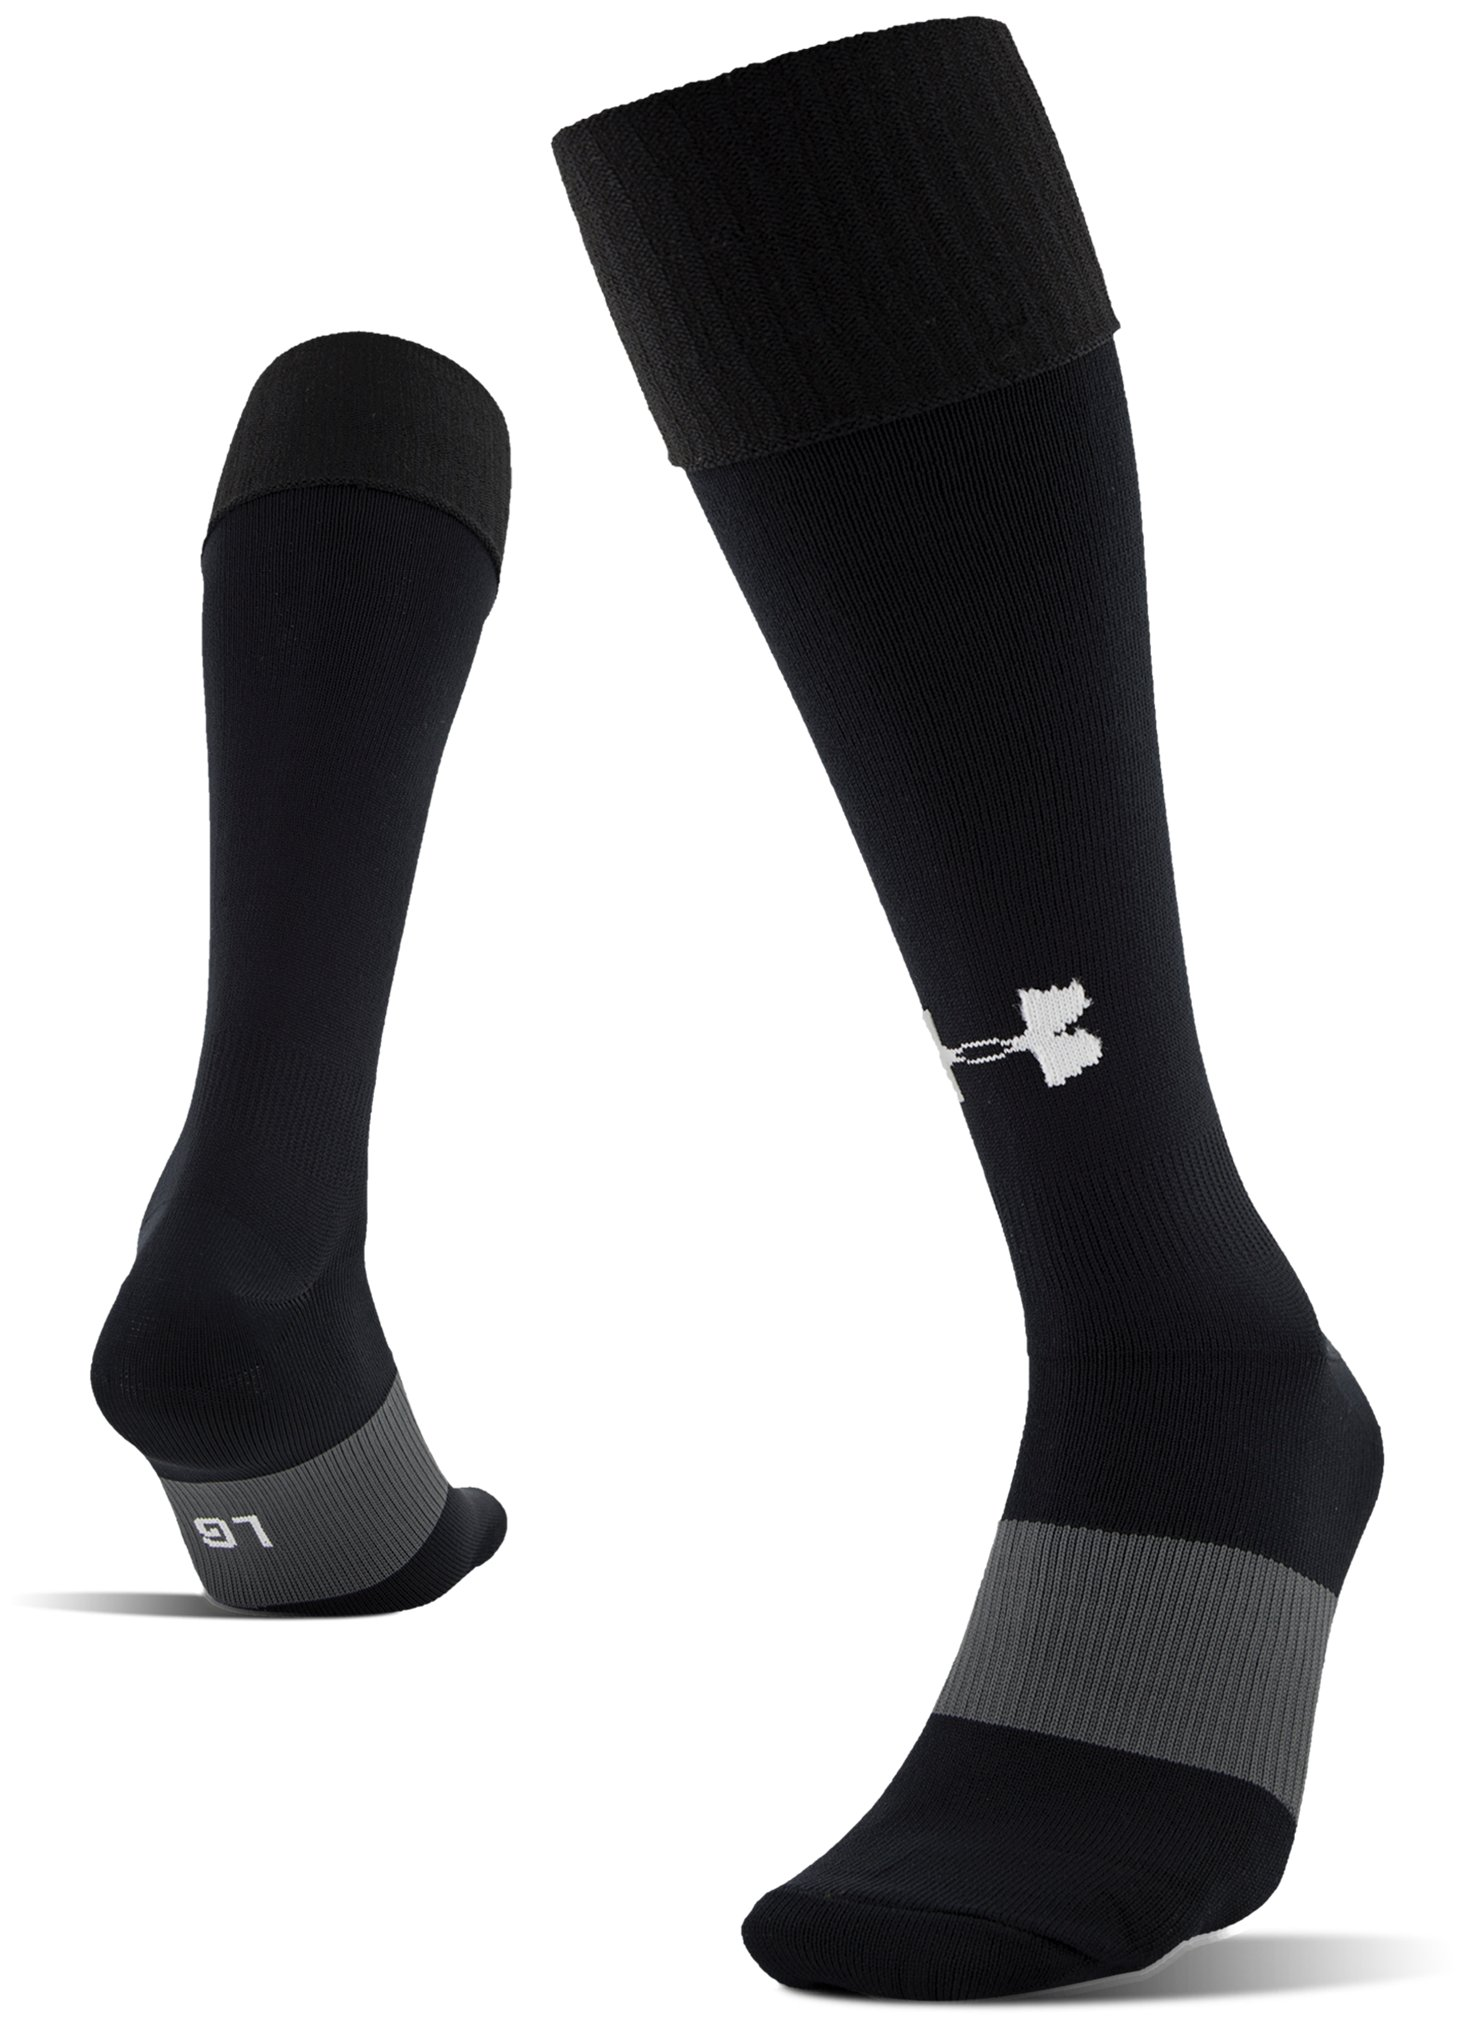 UA Soccer Solid Over-The-Calf Socks 11 Colors $9.99 - $10.00